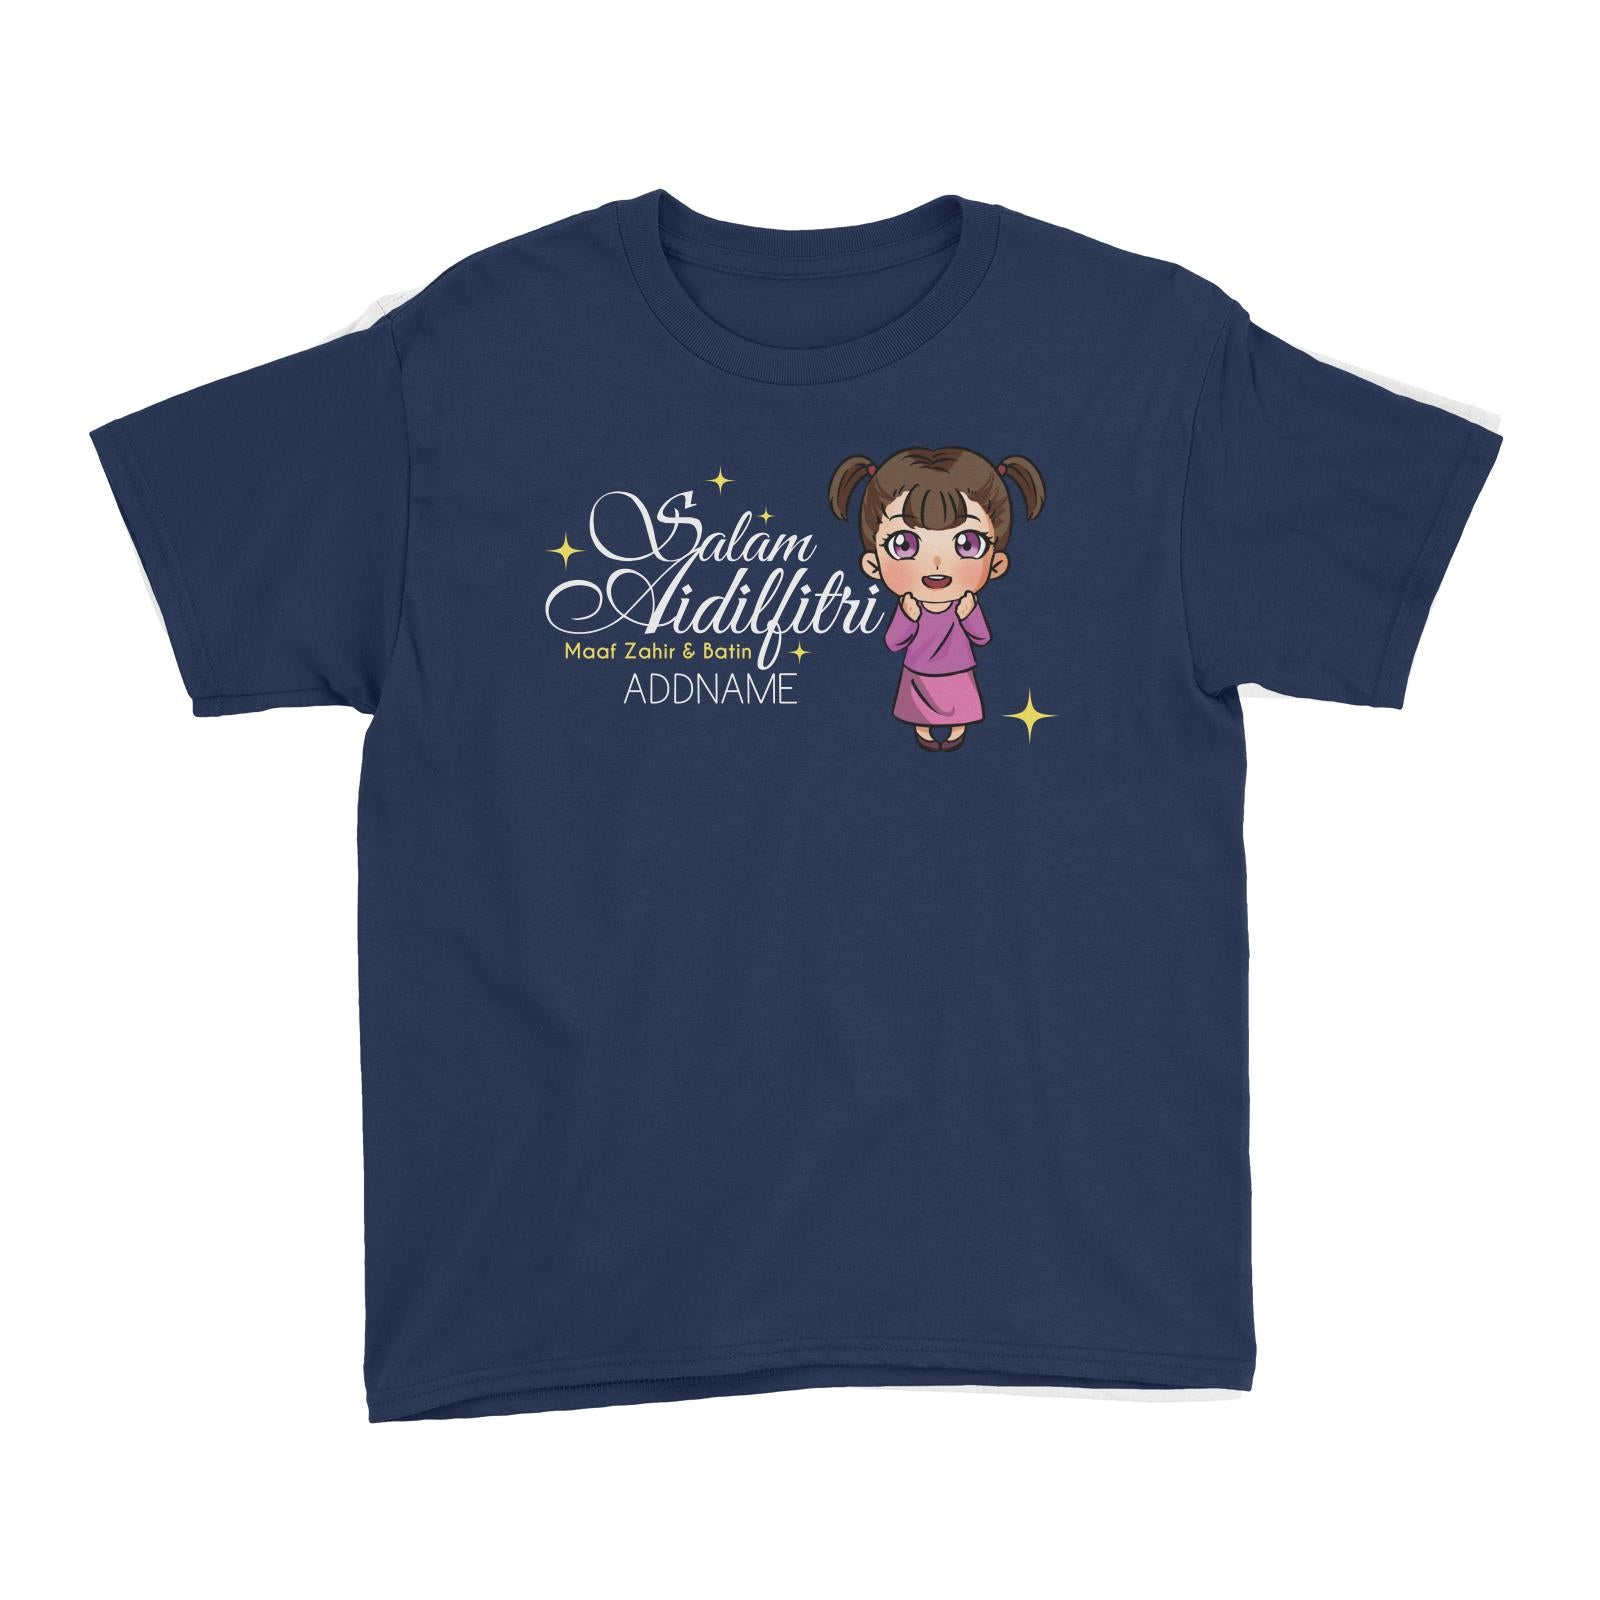 Raya Chibi Wishes Little Girl Addname Wishes Everyone Salam Aidilfitri Maaf Zahir & Batin Kid's T-Shirts